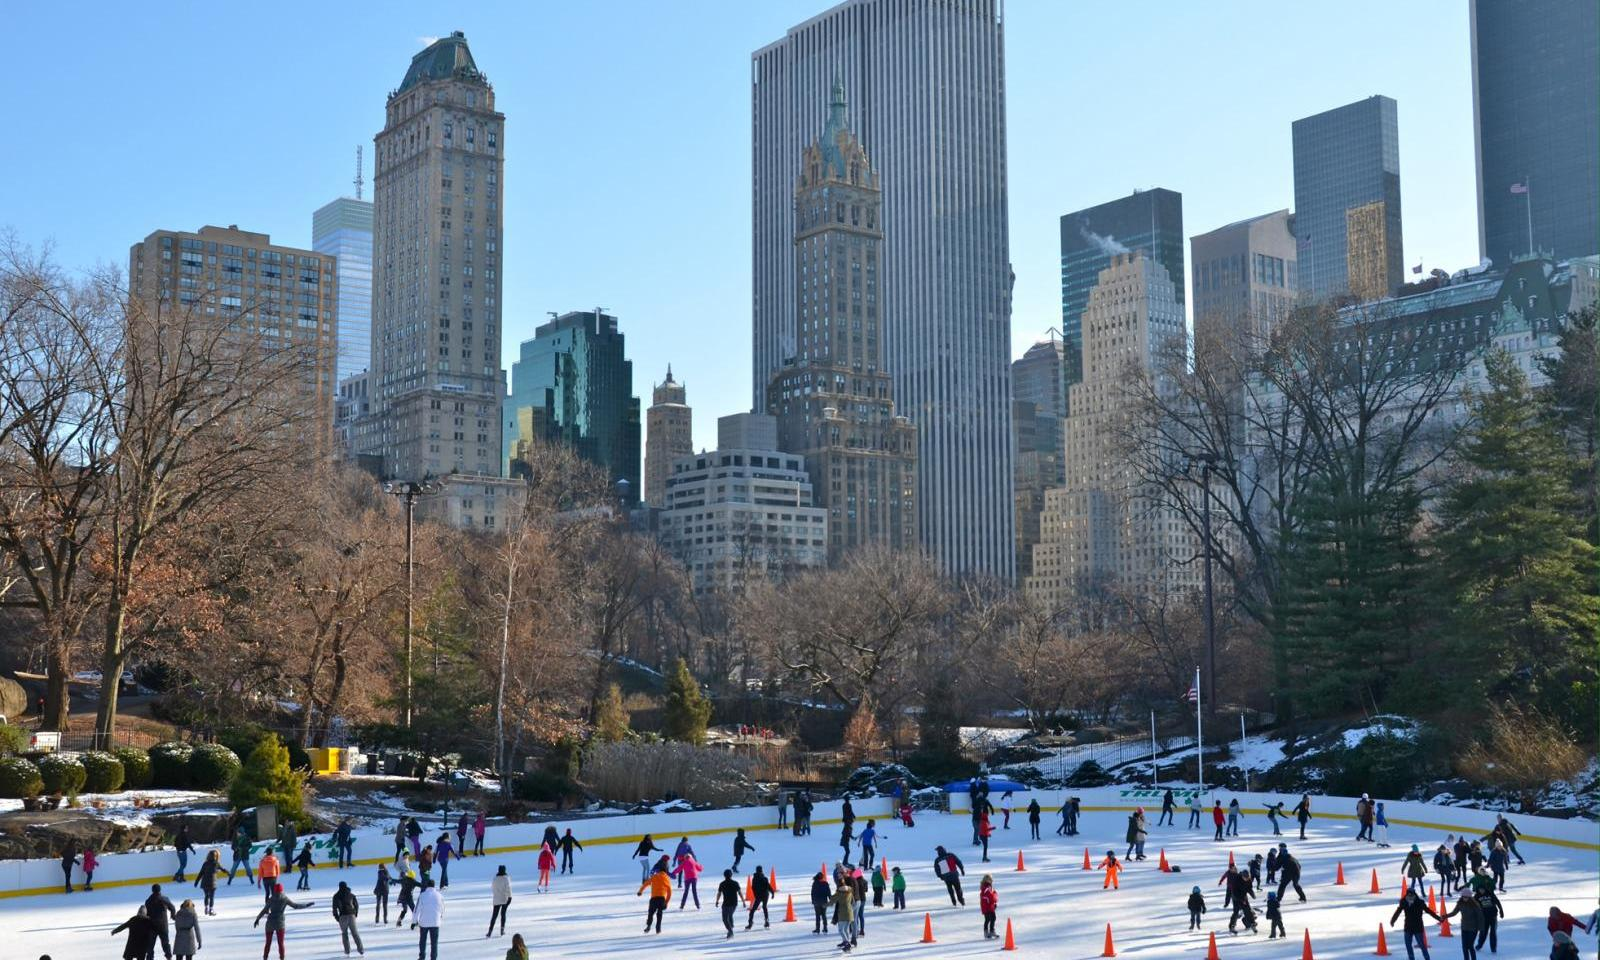 Free Things To Do In Nyc At Christmas 2020 Free Things To Do In Nyc Christmas 2020 Flash | Wmpmya